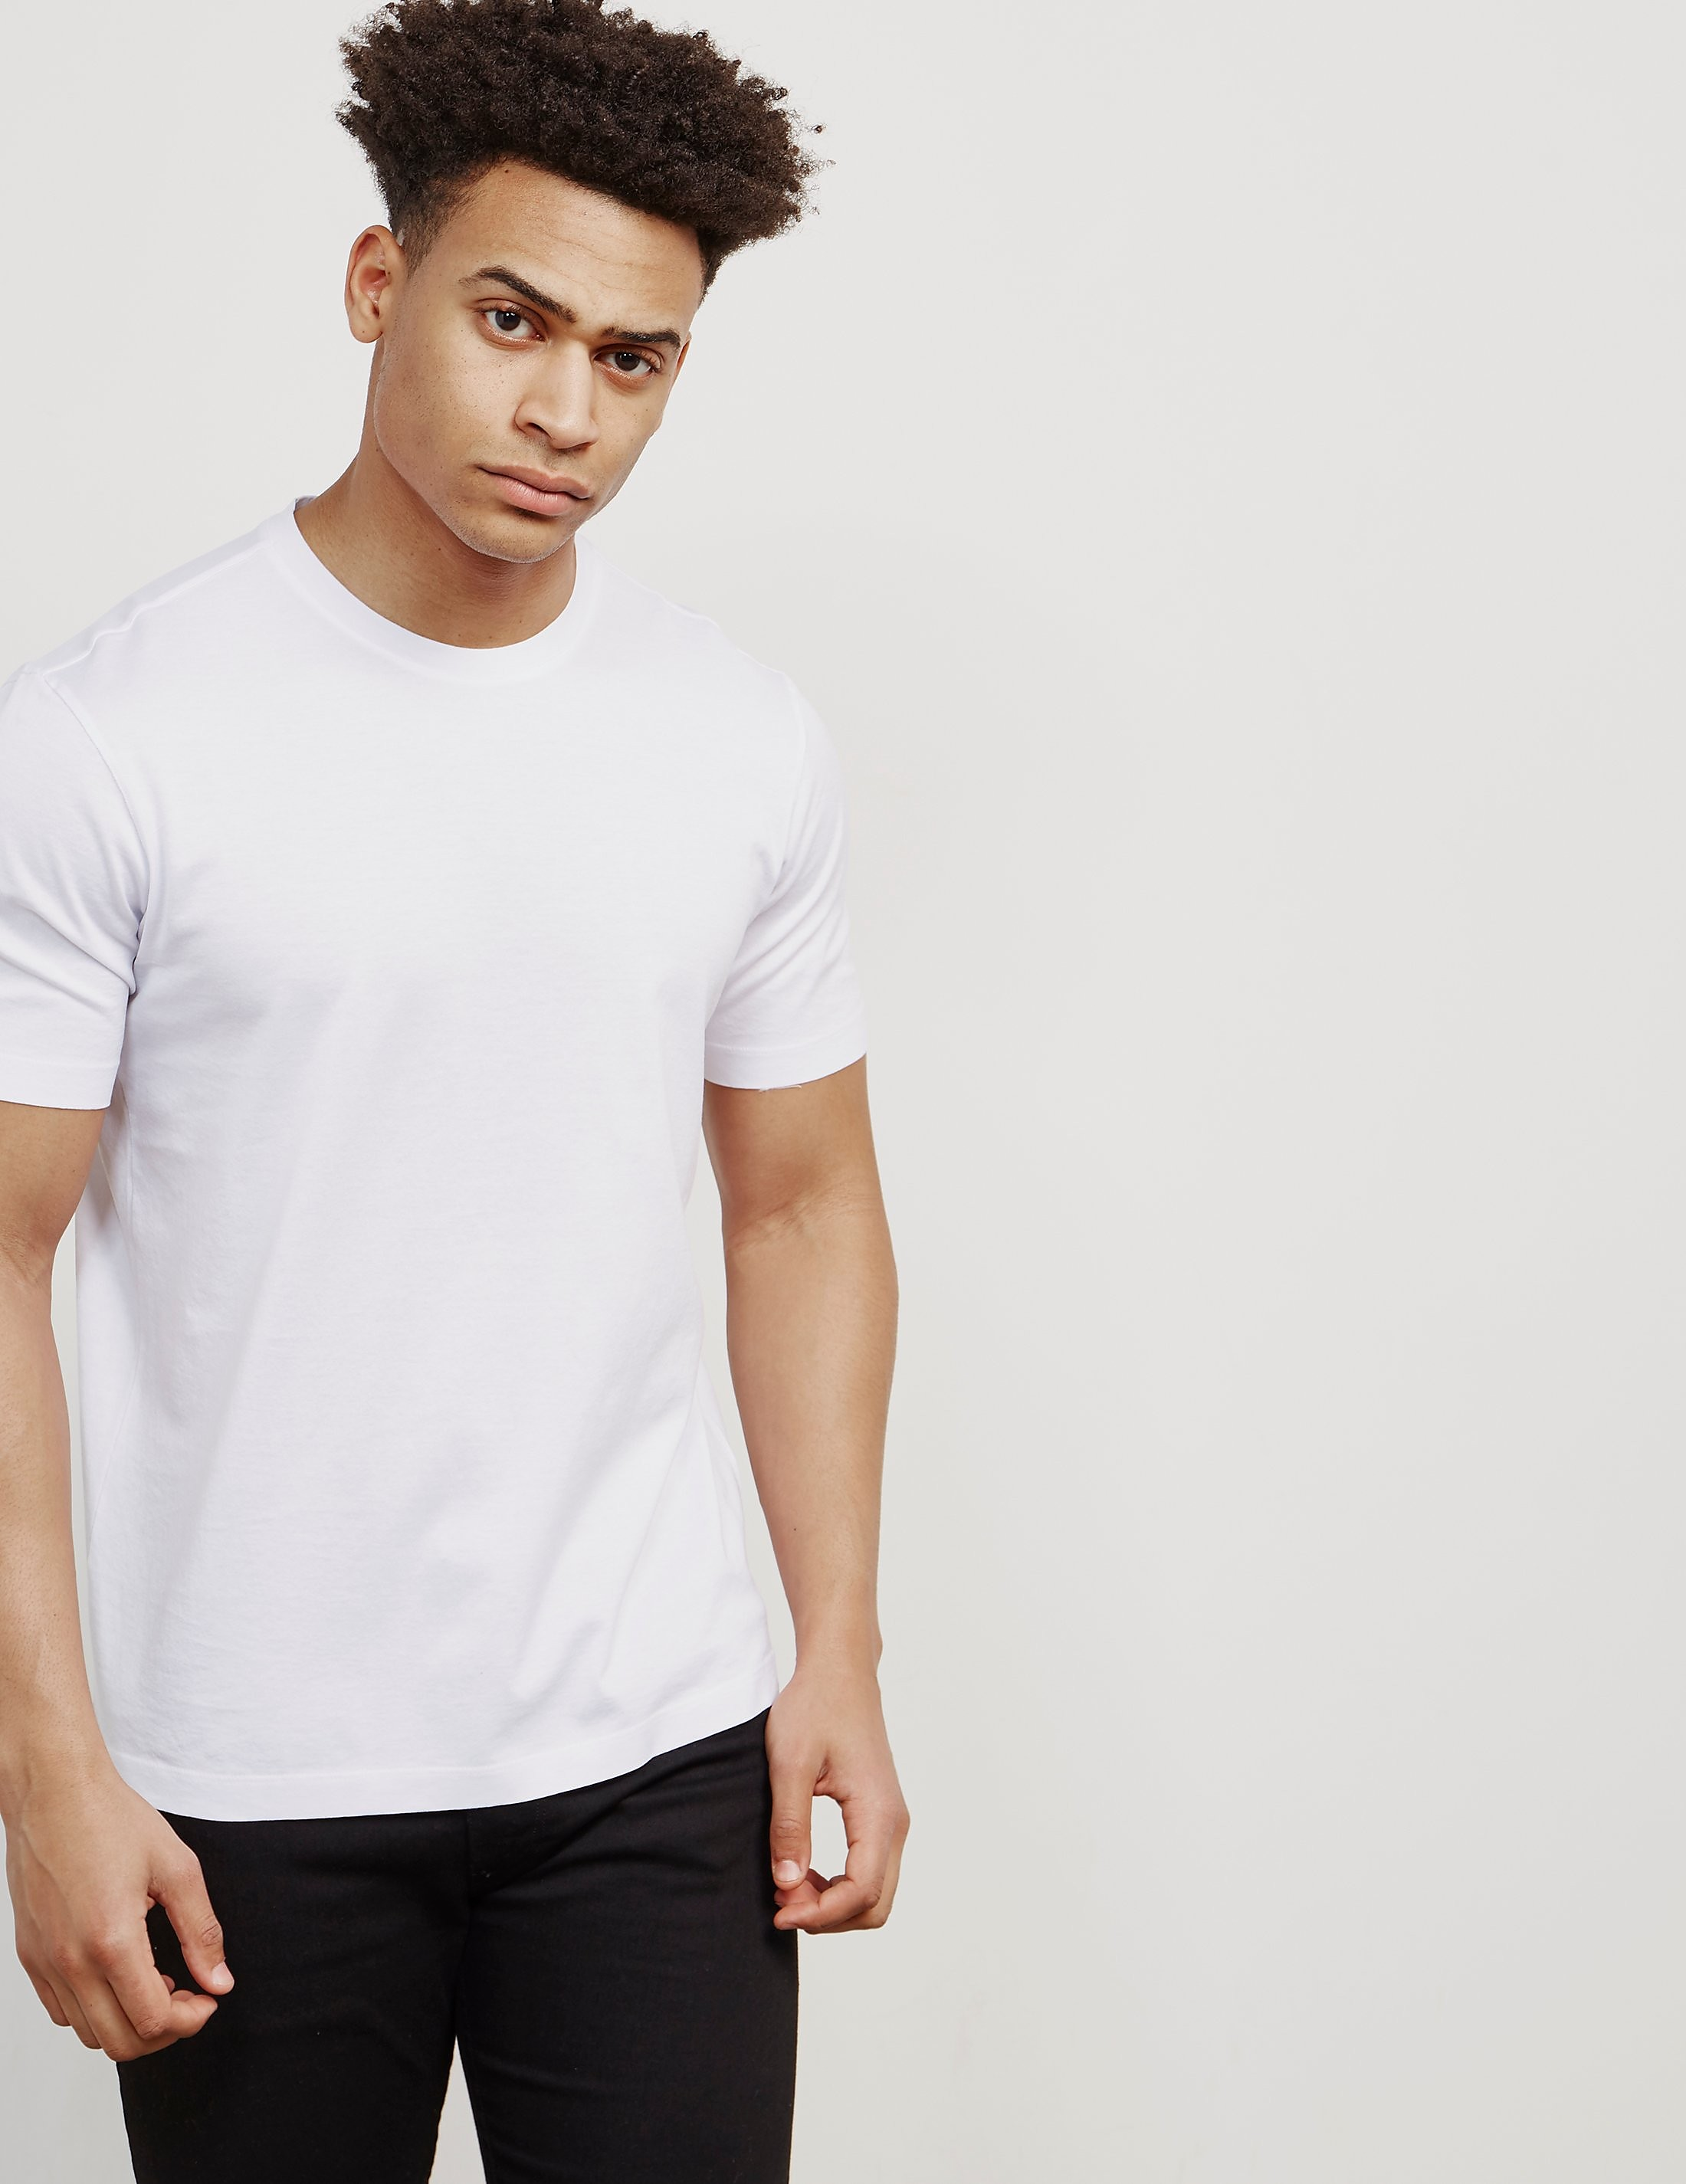 Z Zegna Basic Short Sleeve T-Shirt